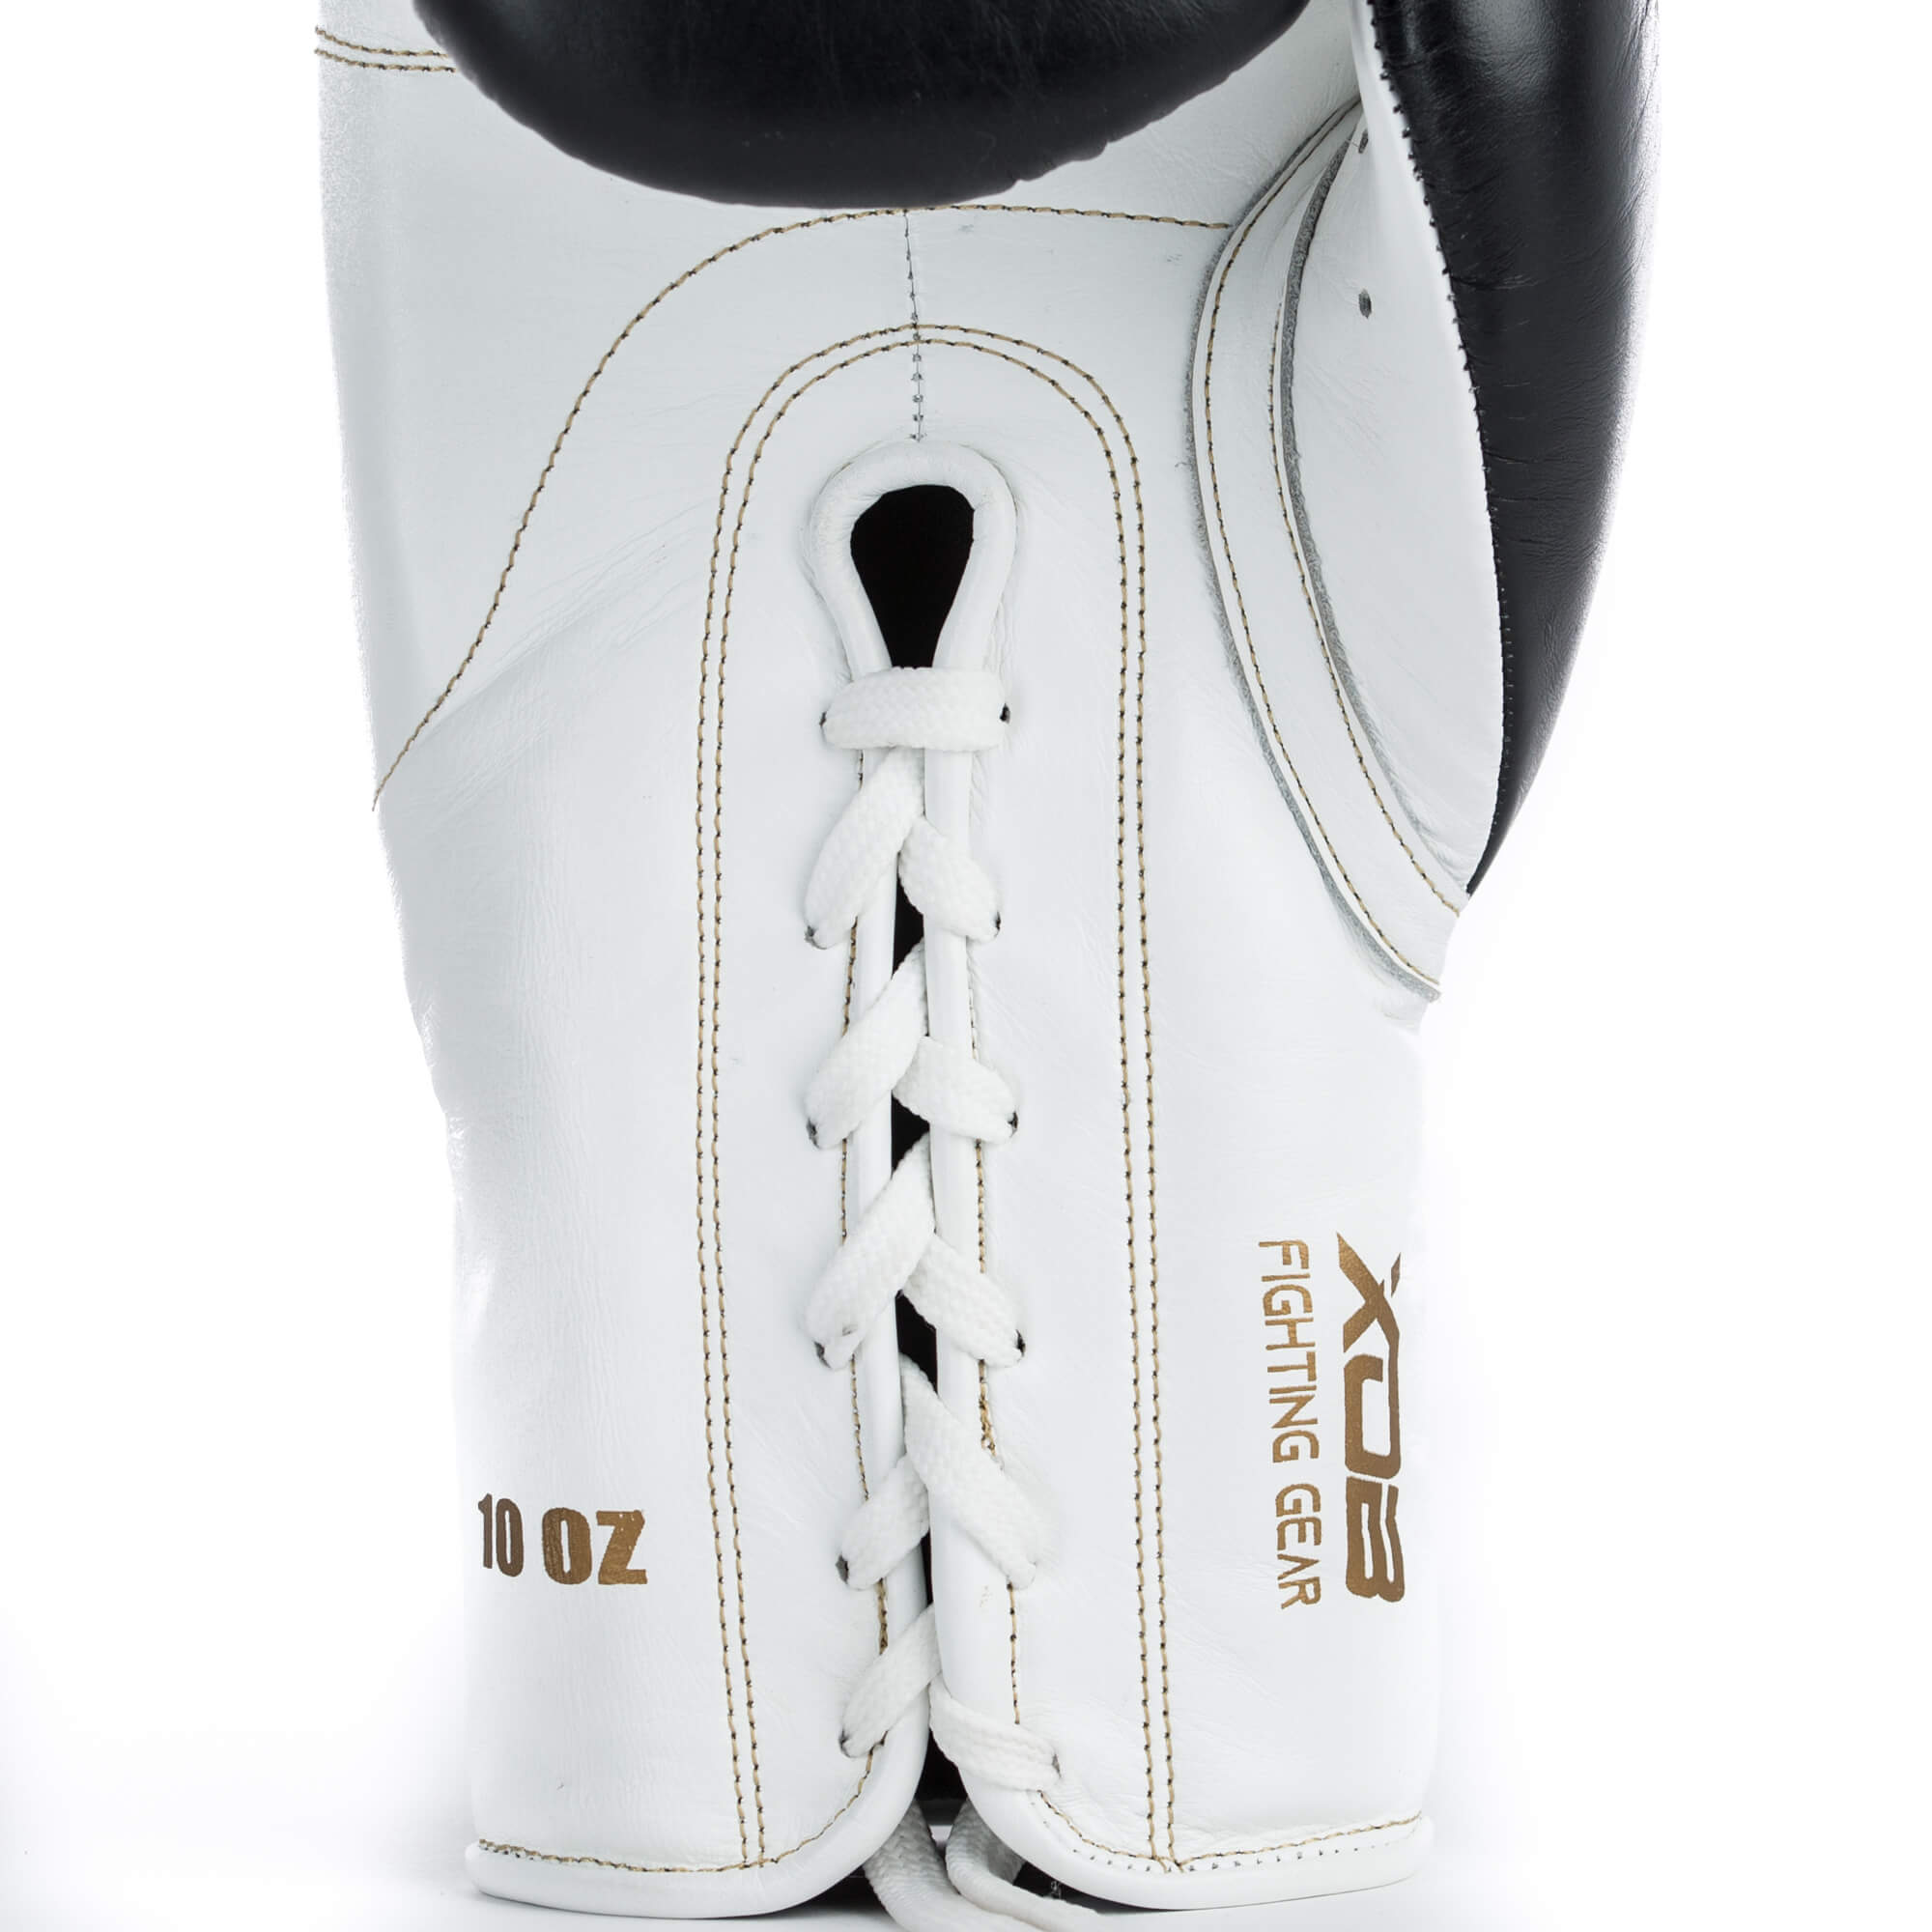 XOB Topglove Laced Boxing Gloves - Black & White